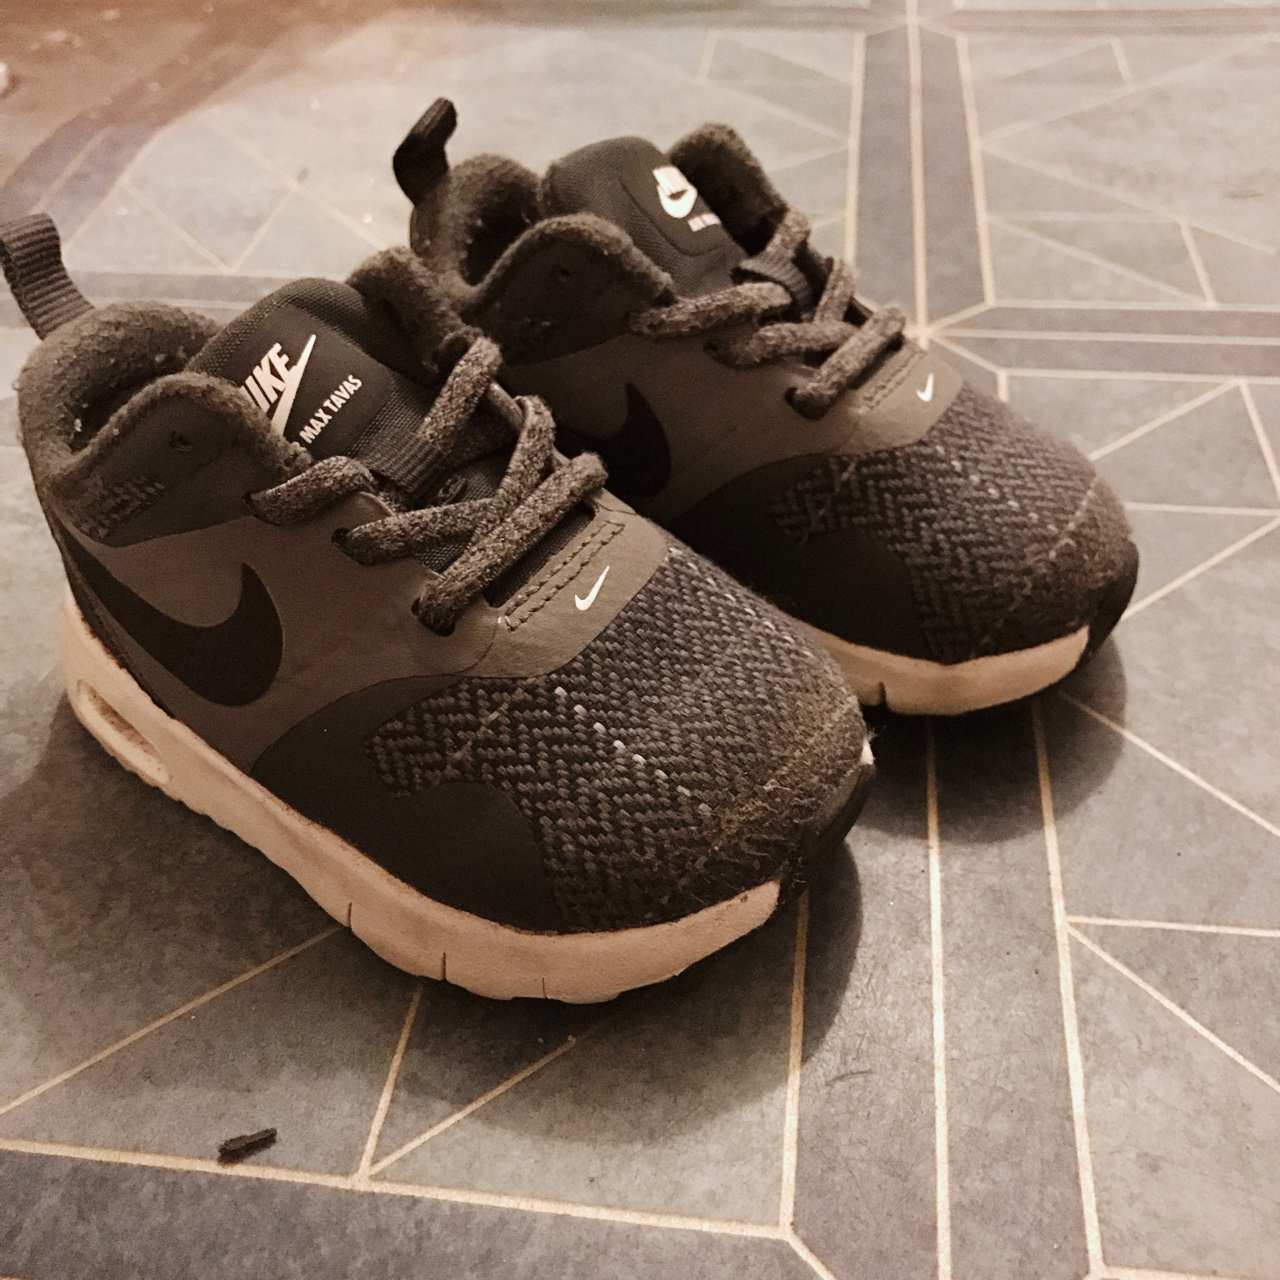 Size 4.5 infant trainers #nike #boys